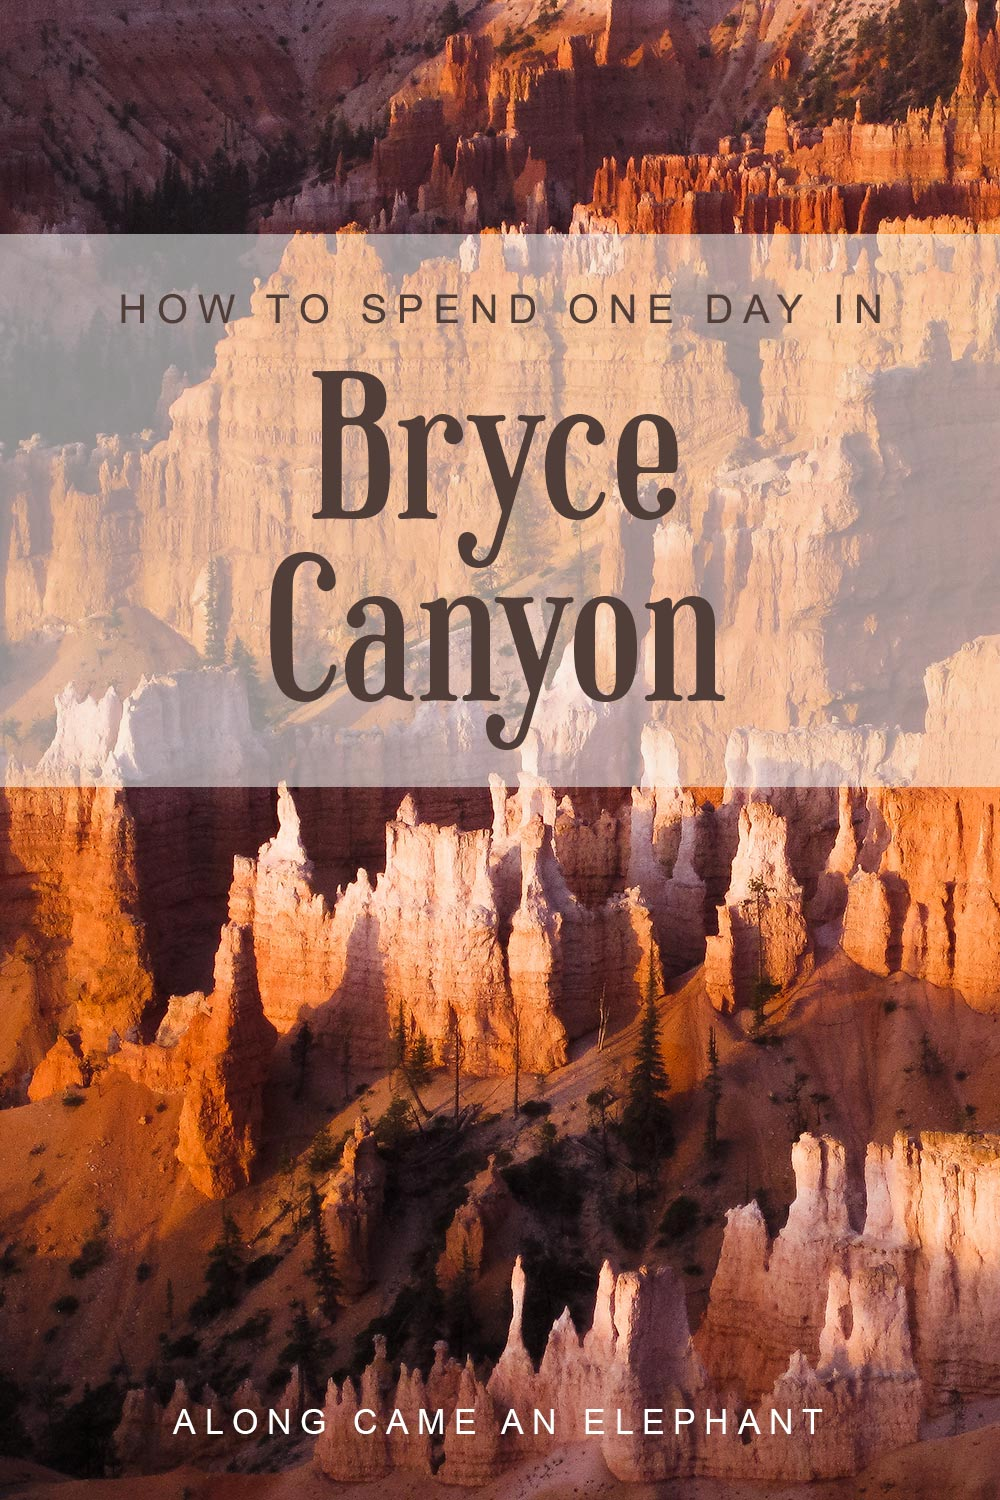 The ultimate one day in Bryce Canyon itinerary for any nature lover! Includes the best hikes and viewpoints!  #roadtrip #brycecanyon #usatravel